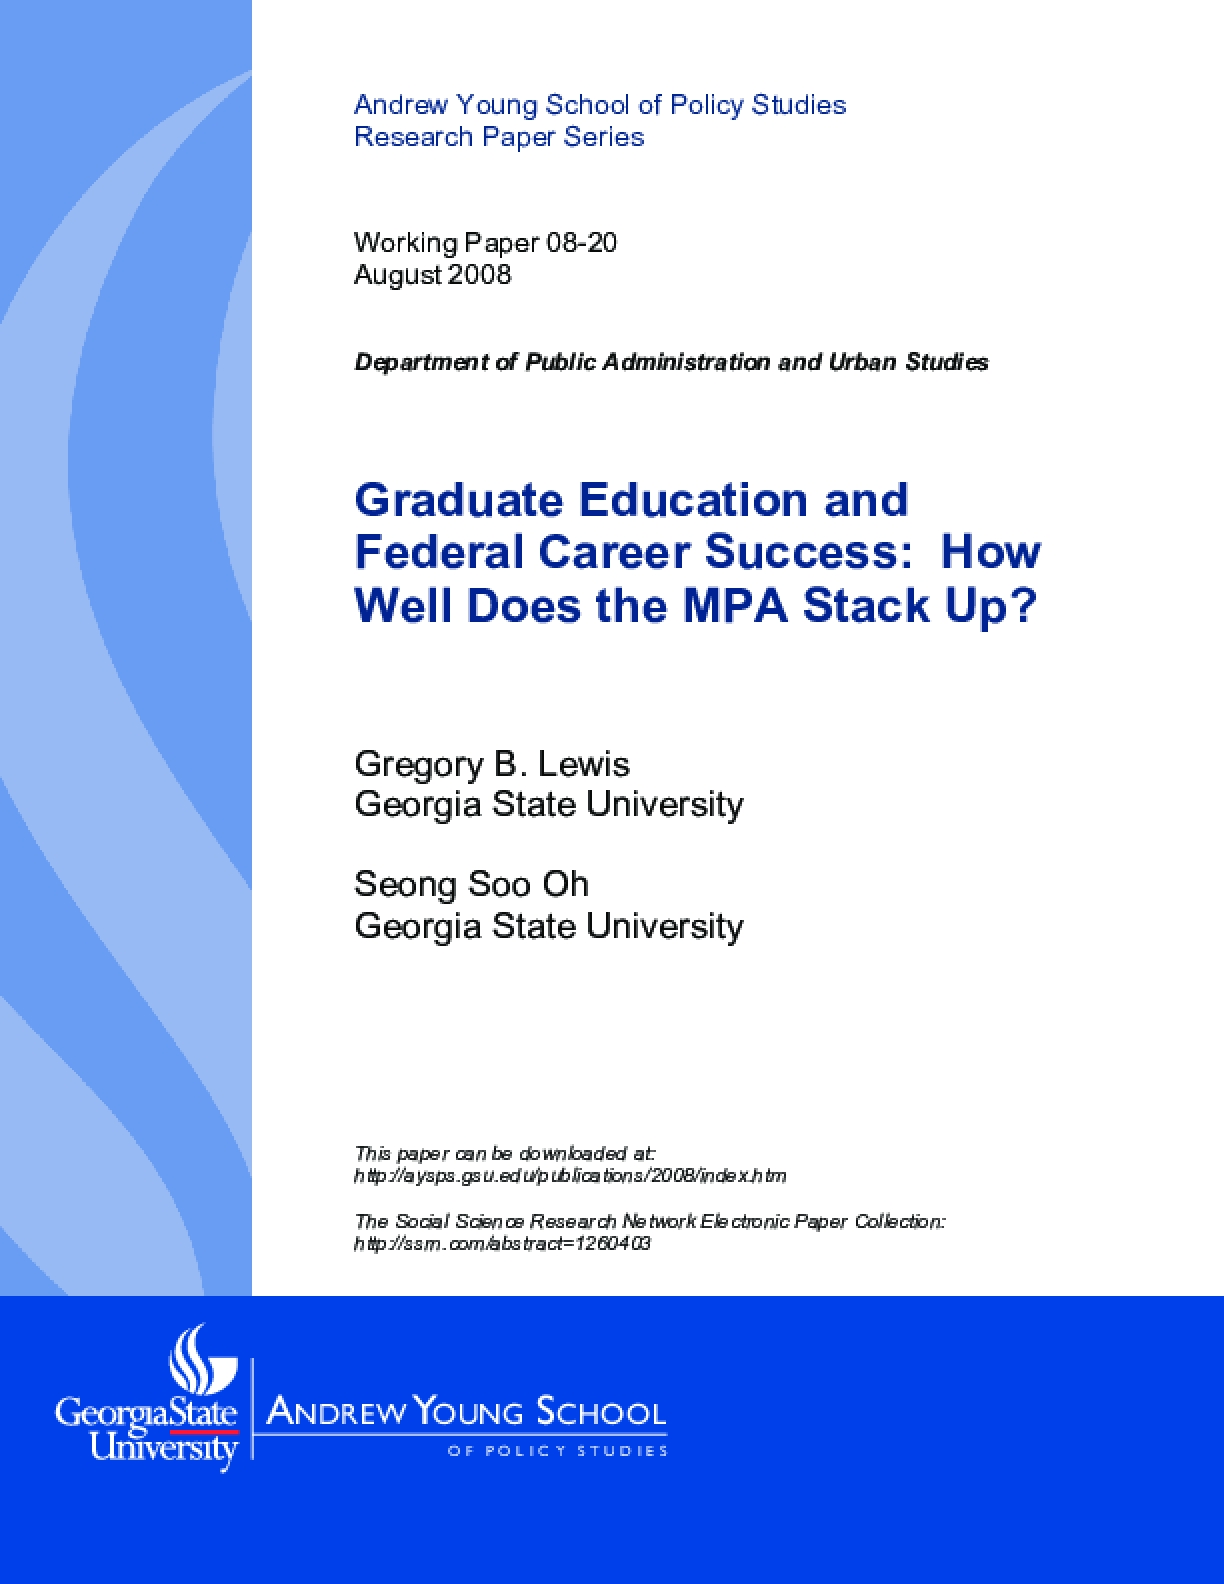 Graduate Education and Federal Career Success: How Well Does the MPA Stack Up?